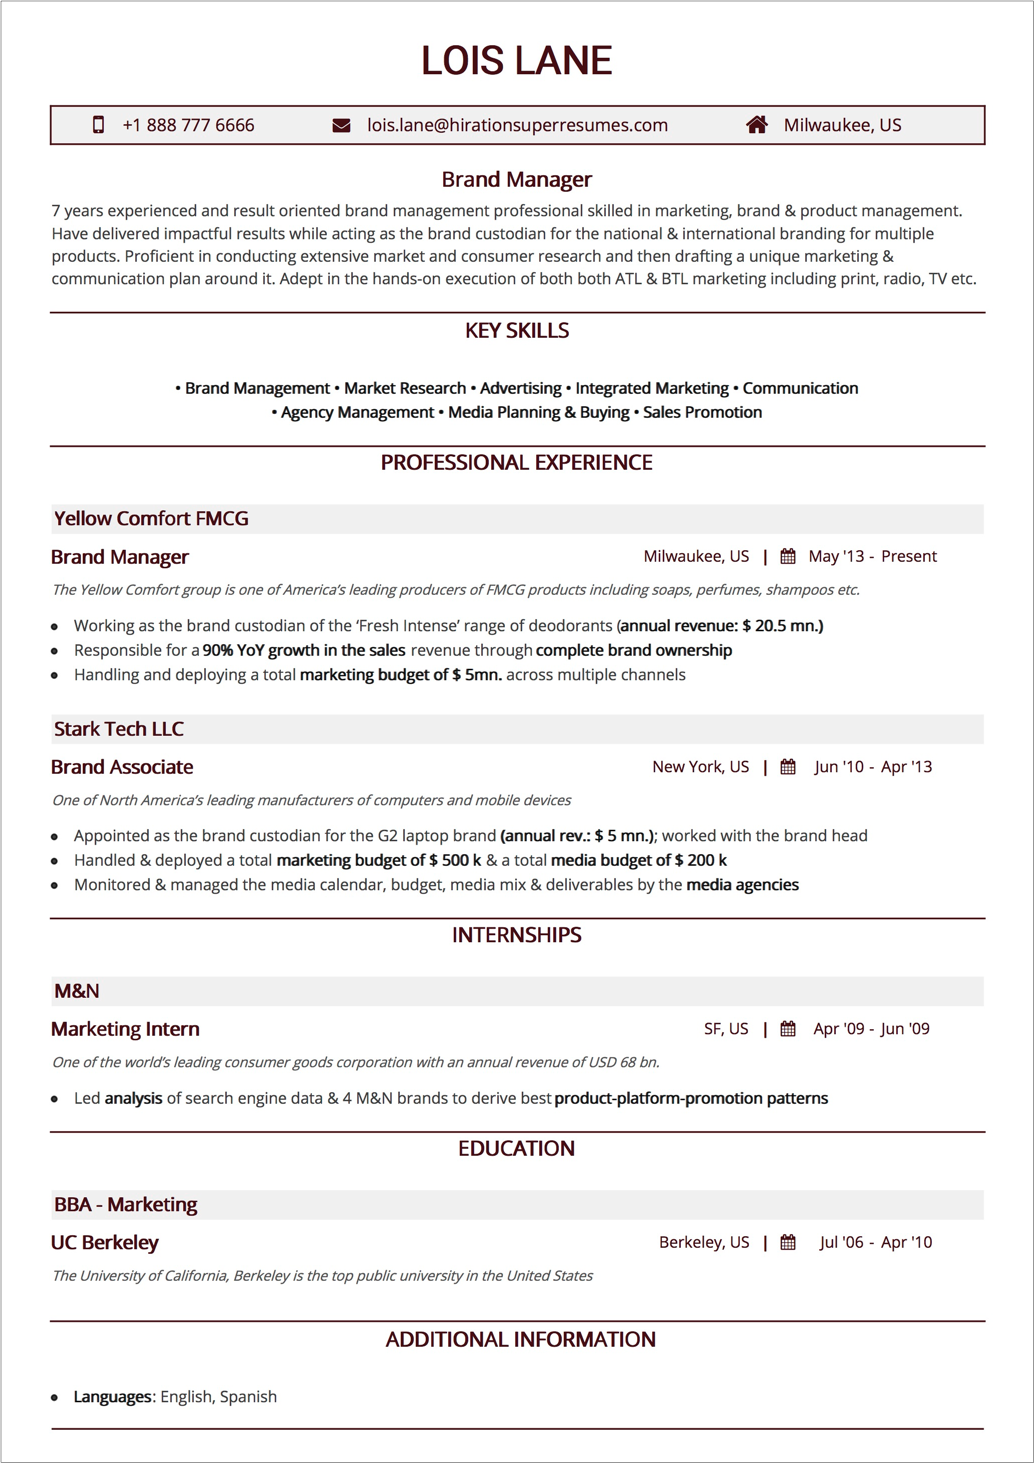 Business Analyst Resume: Examples & 2019 Guide [+ Best Samples]